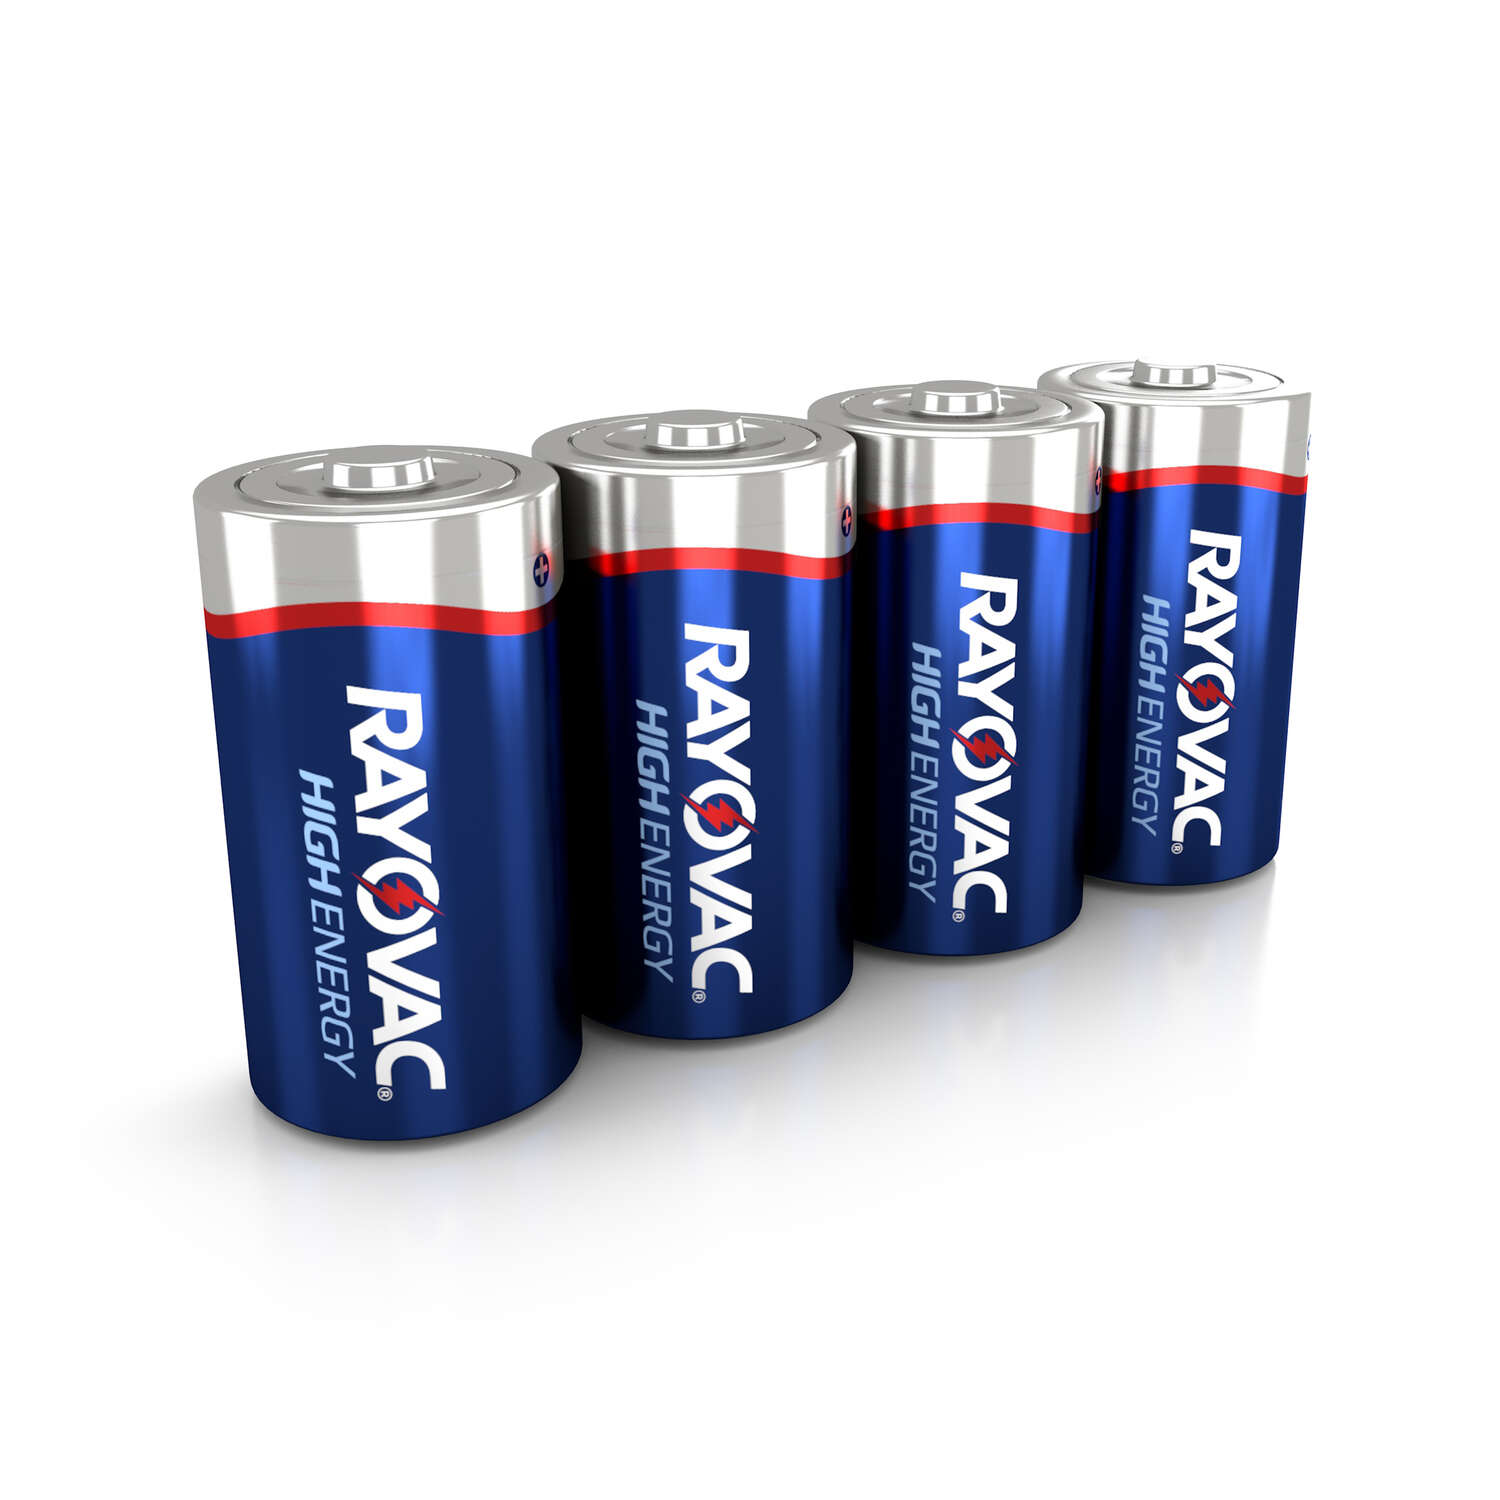 Rayovac  D  Alkaline  Batteries  4 pk Carded  1.5 volts